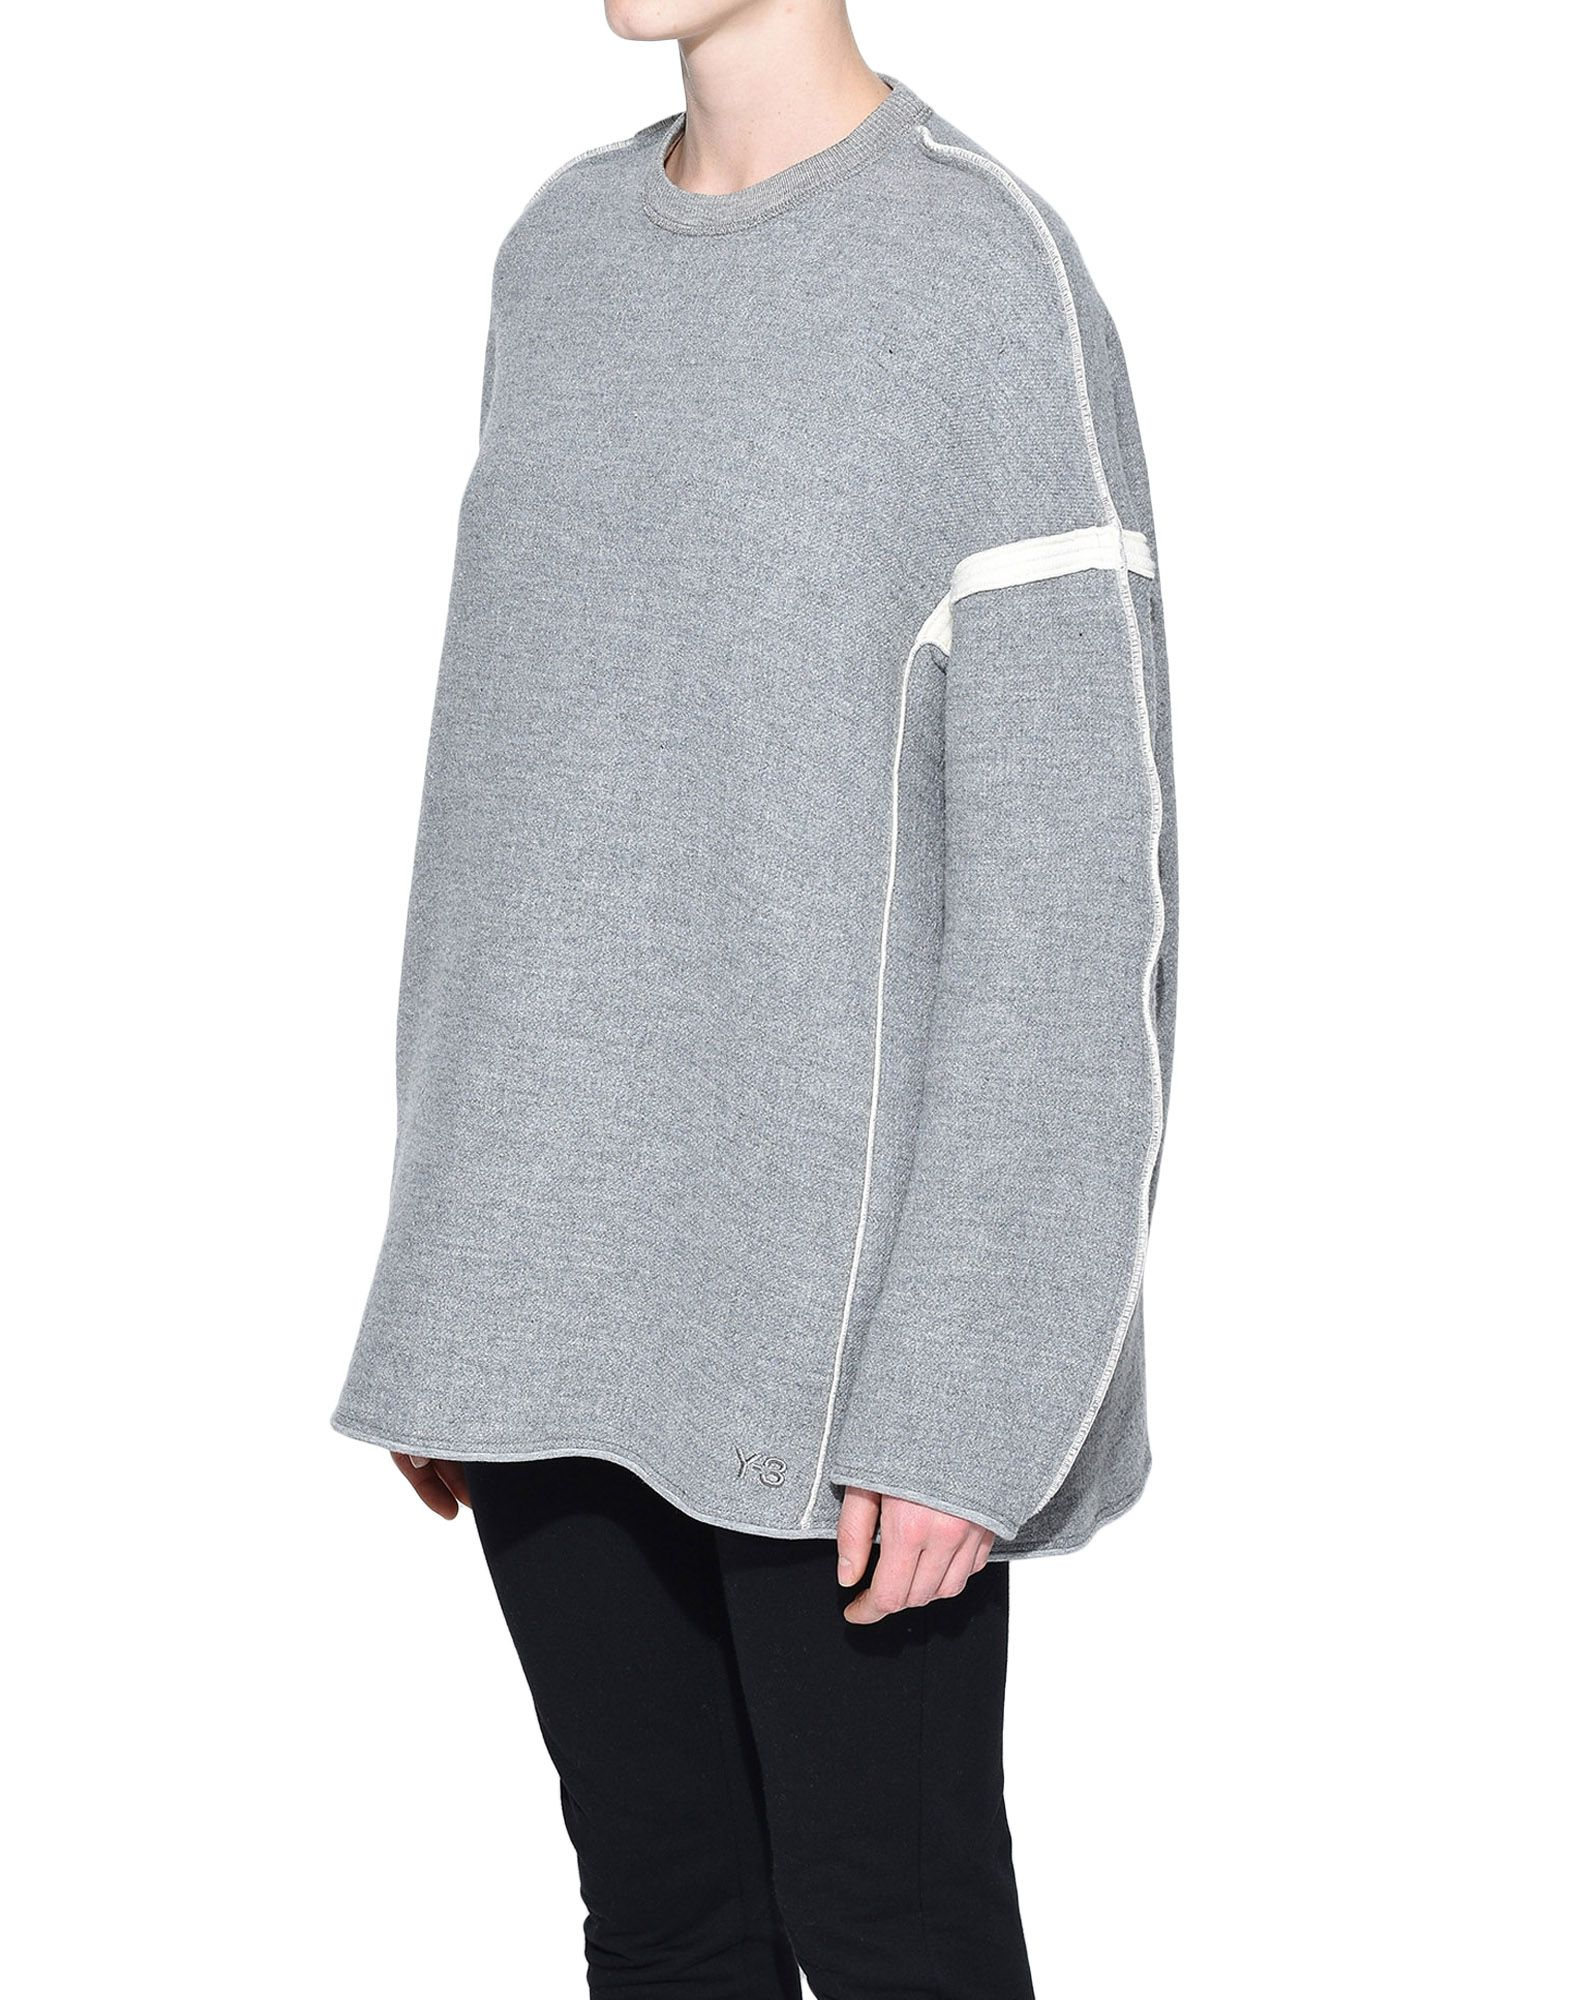 Y-3 Y-3 Oversize Spacer Wool Sweater スウェット レディース e